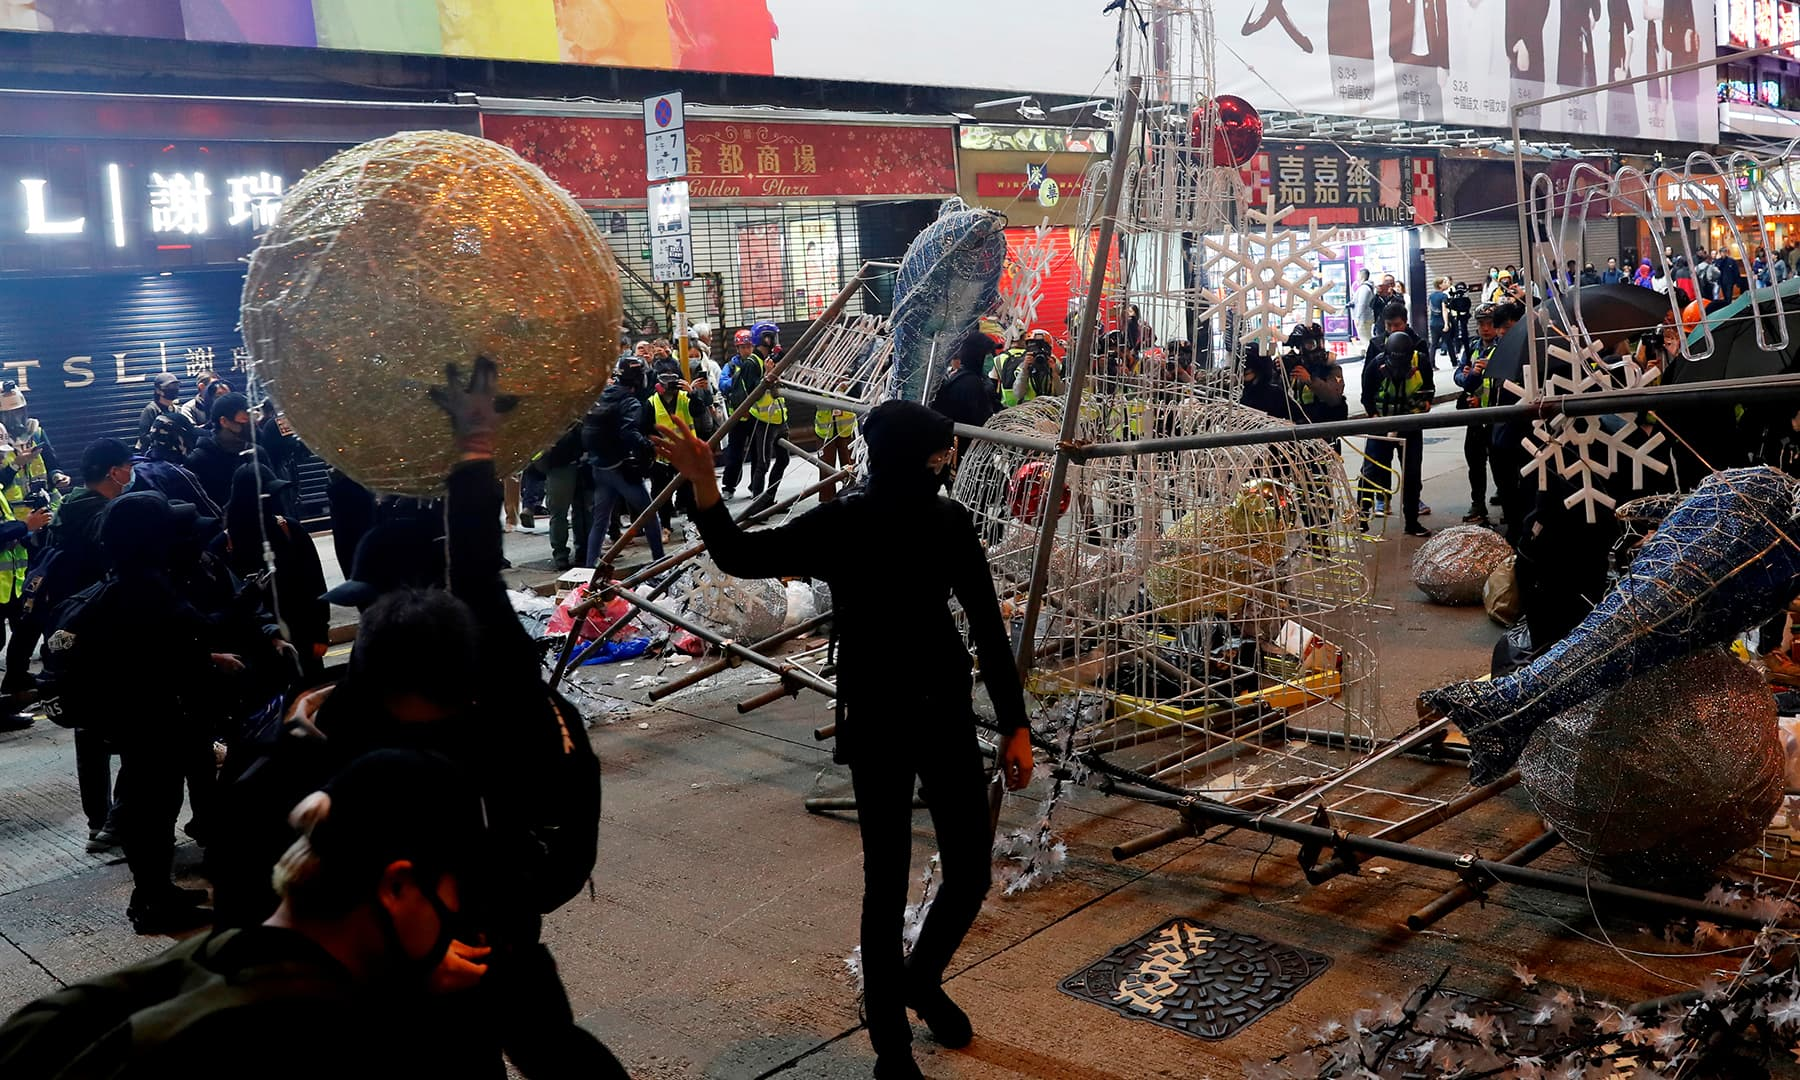 Anti-government protesters tear down Christmas and New Year's decorations during a demonstration on New Year's Eve outside Mong Kok police station in Hong Kong, China, on Tuesday. — Reuters